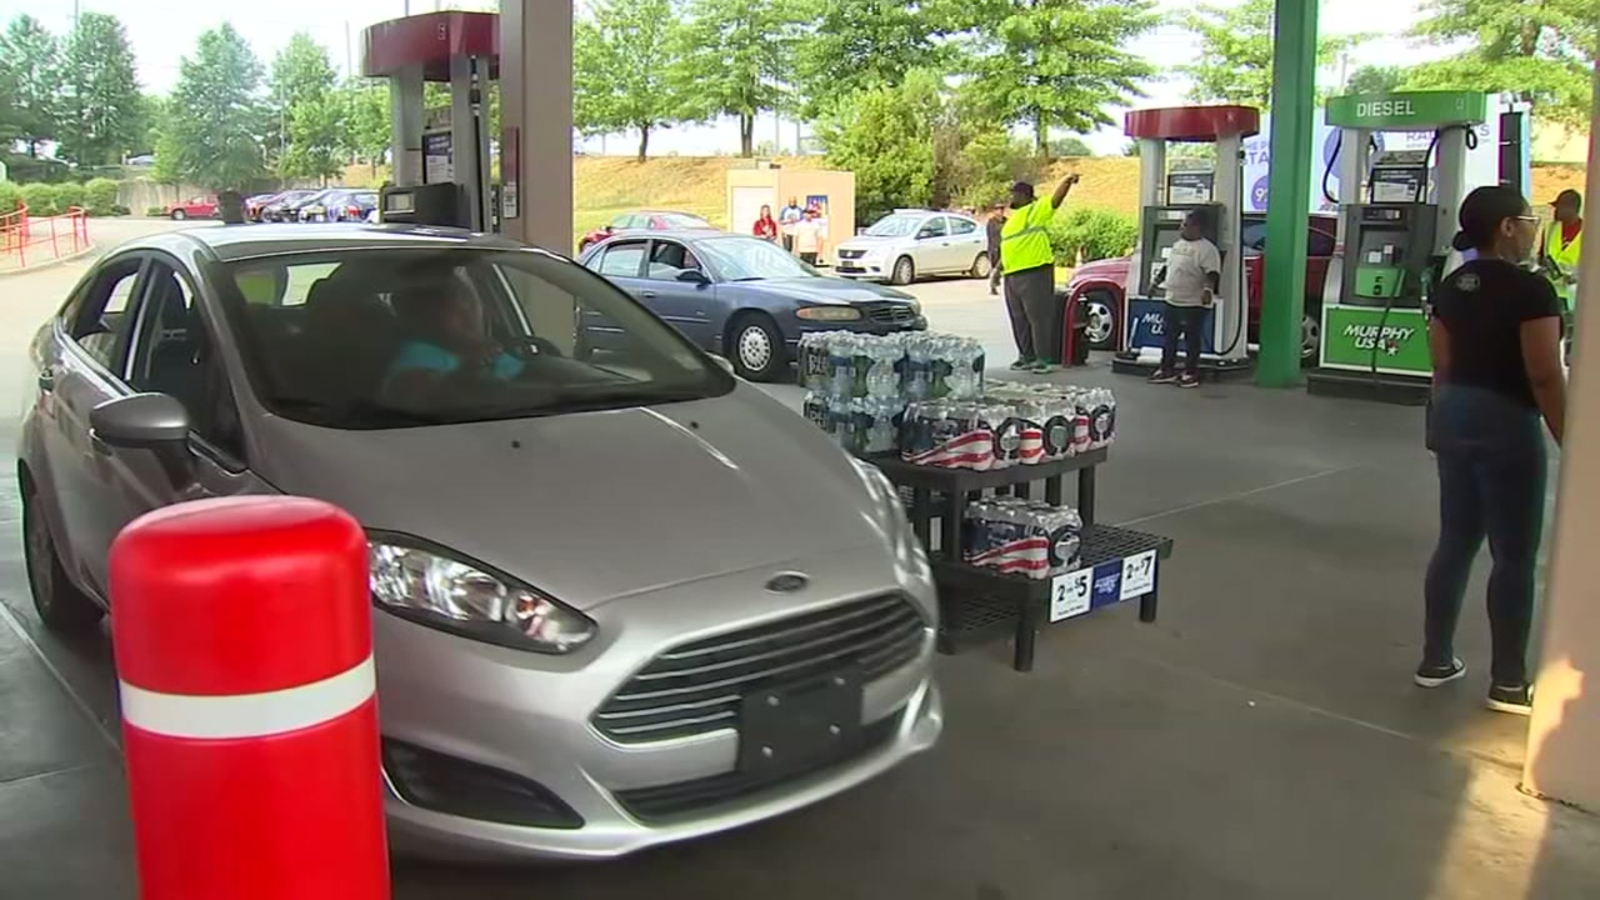 Mount Zion Baptist Church gives away free gas in Raleigh to those in need